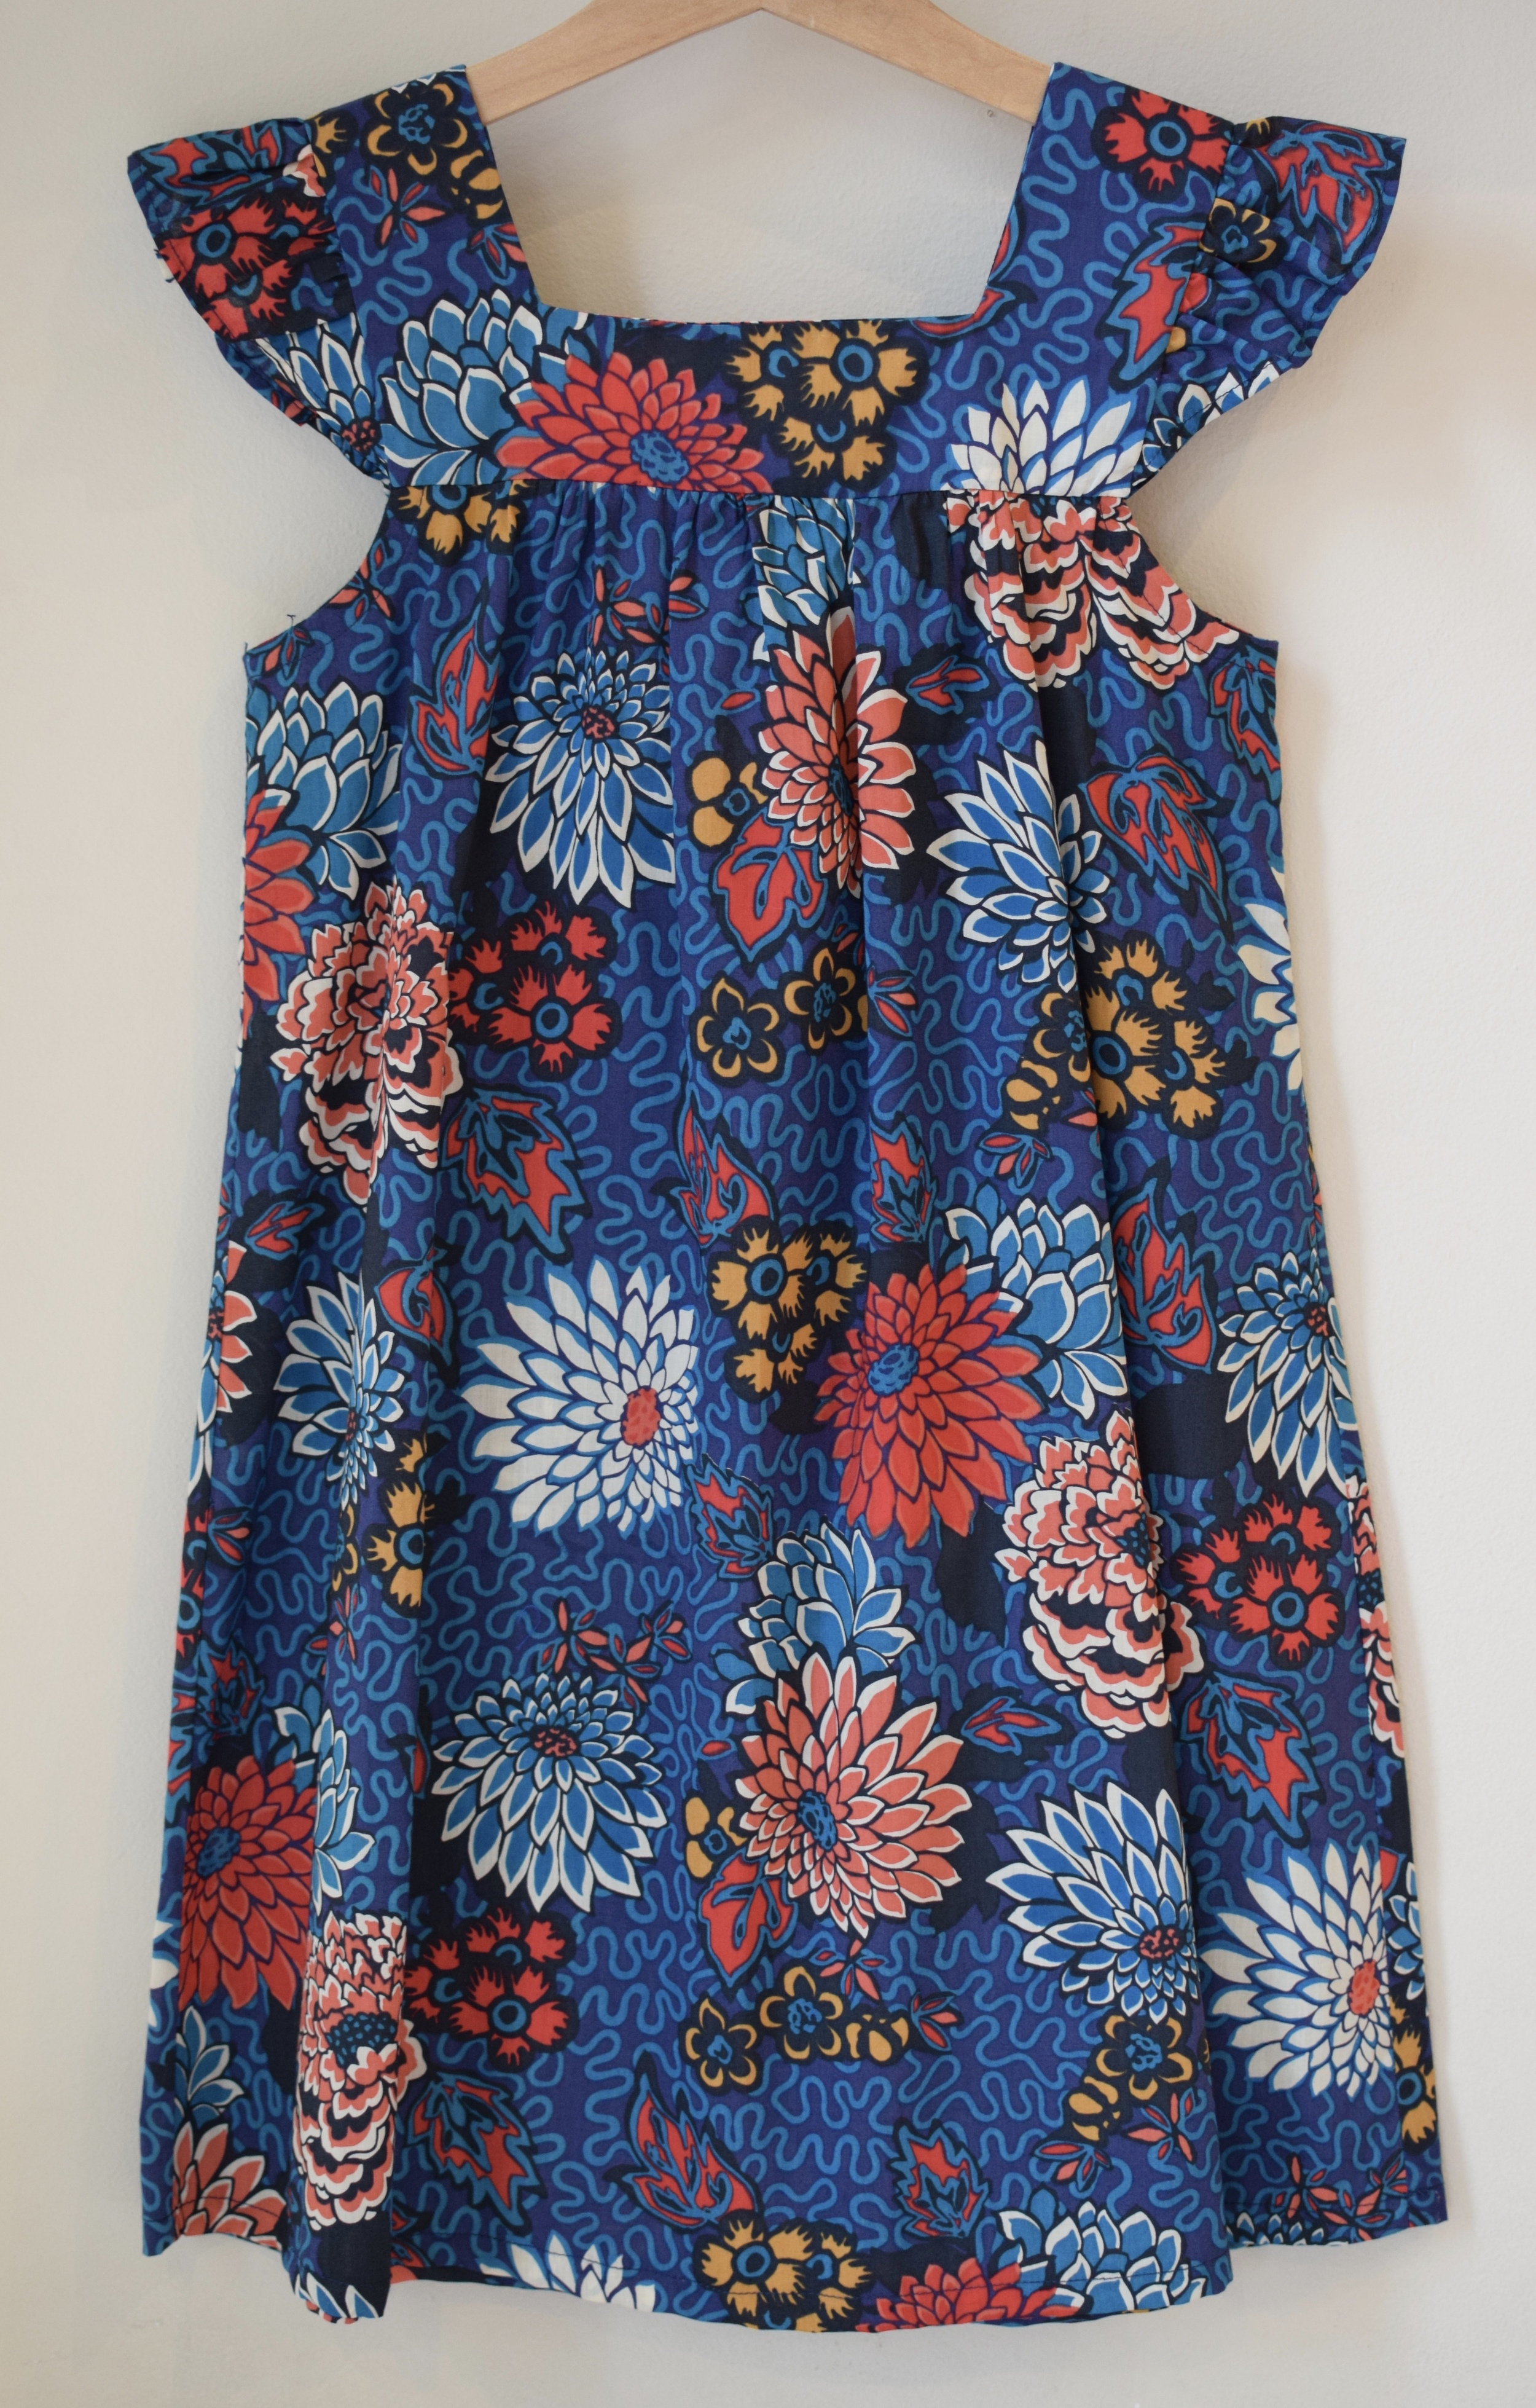 Meandering Chrysanthemums red and blue Dress £43    Liberty print dress with ruffle sleeves and square neck detail. Available exclusively in size 6y  .